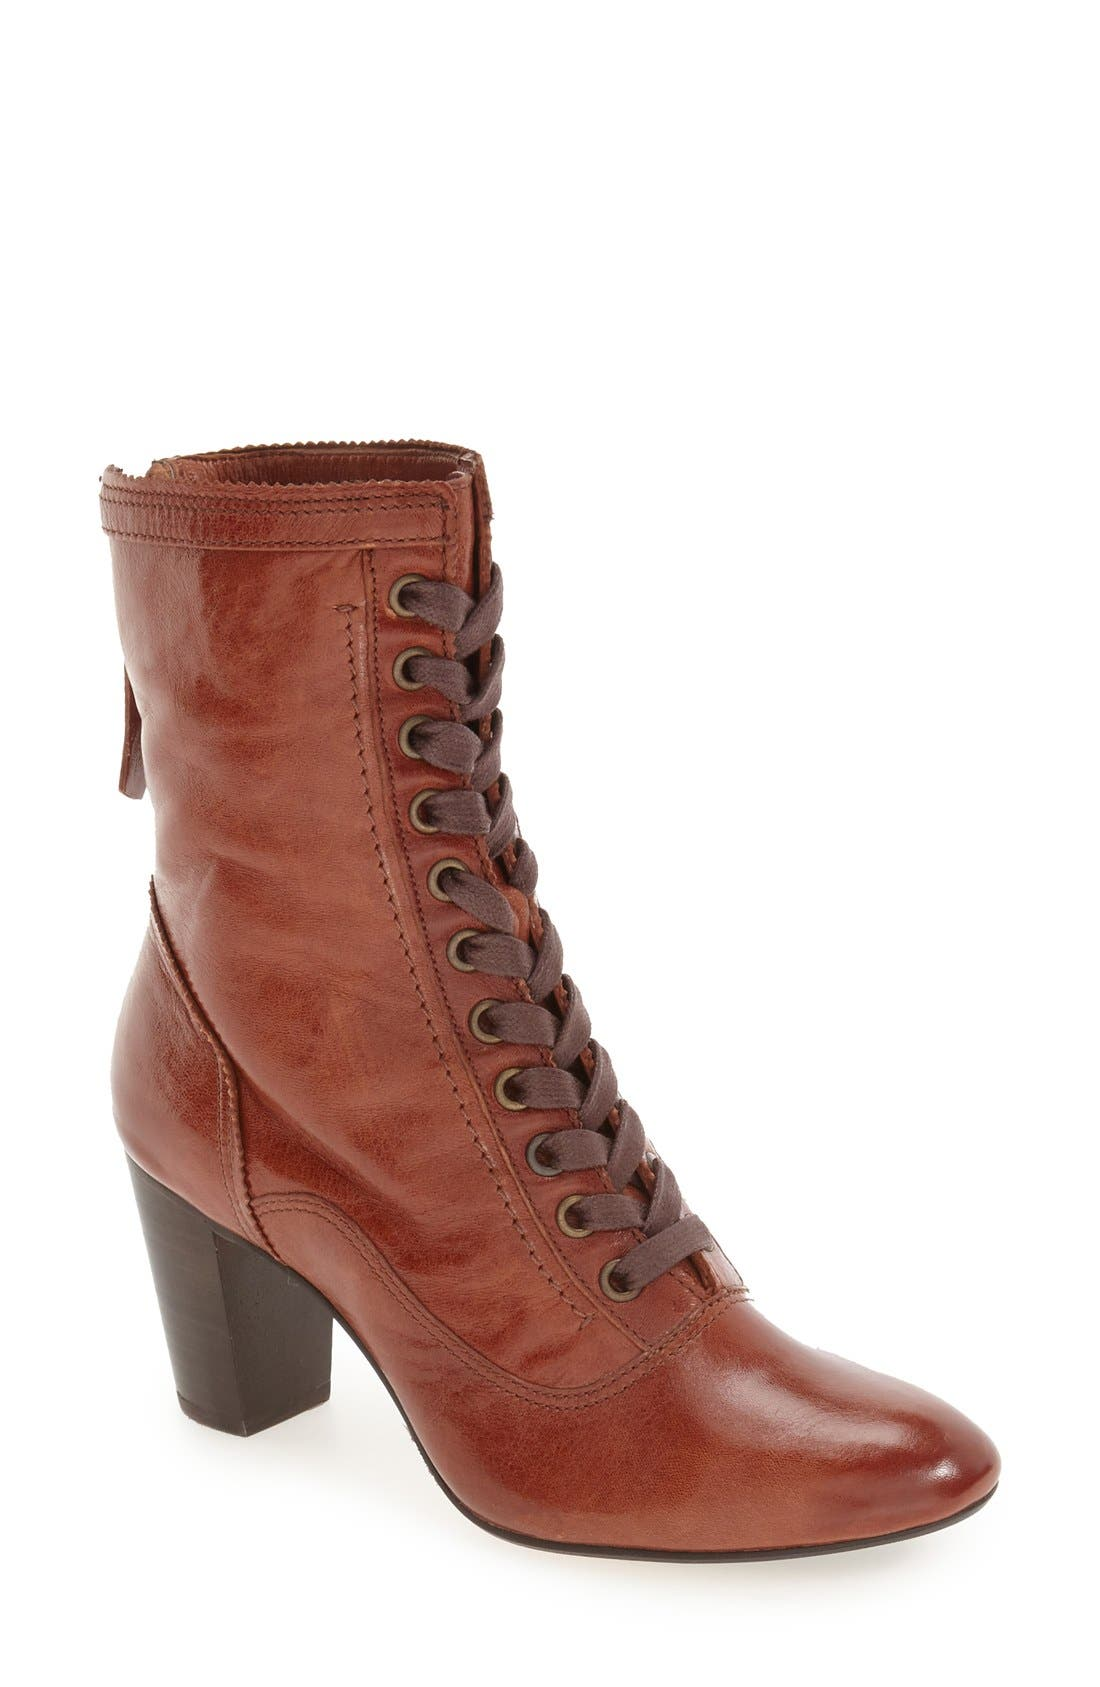 'Adaline' Lace-Up Boot,                             Main thumbnail 1, color,                             Whiskey Washed Leather